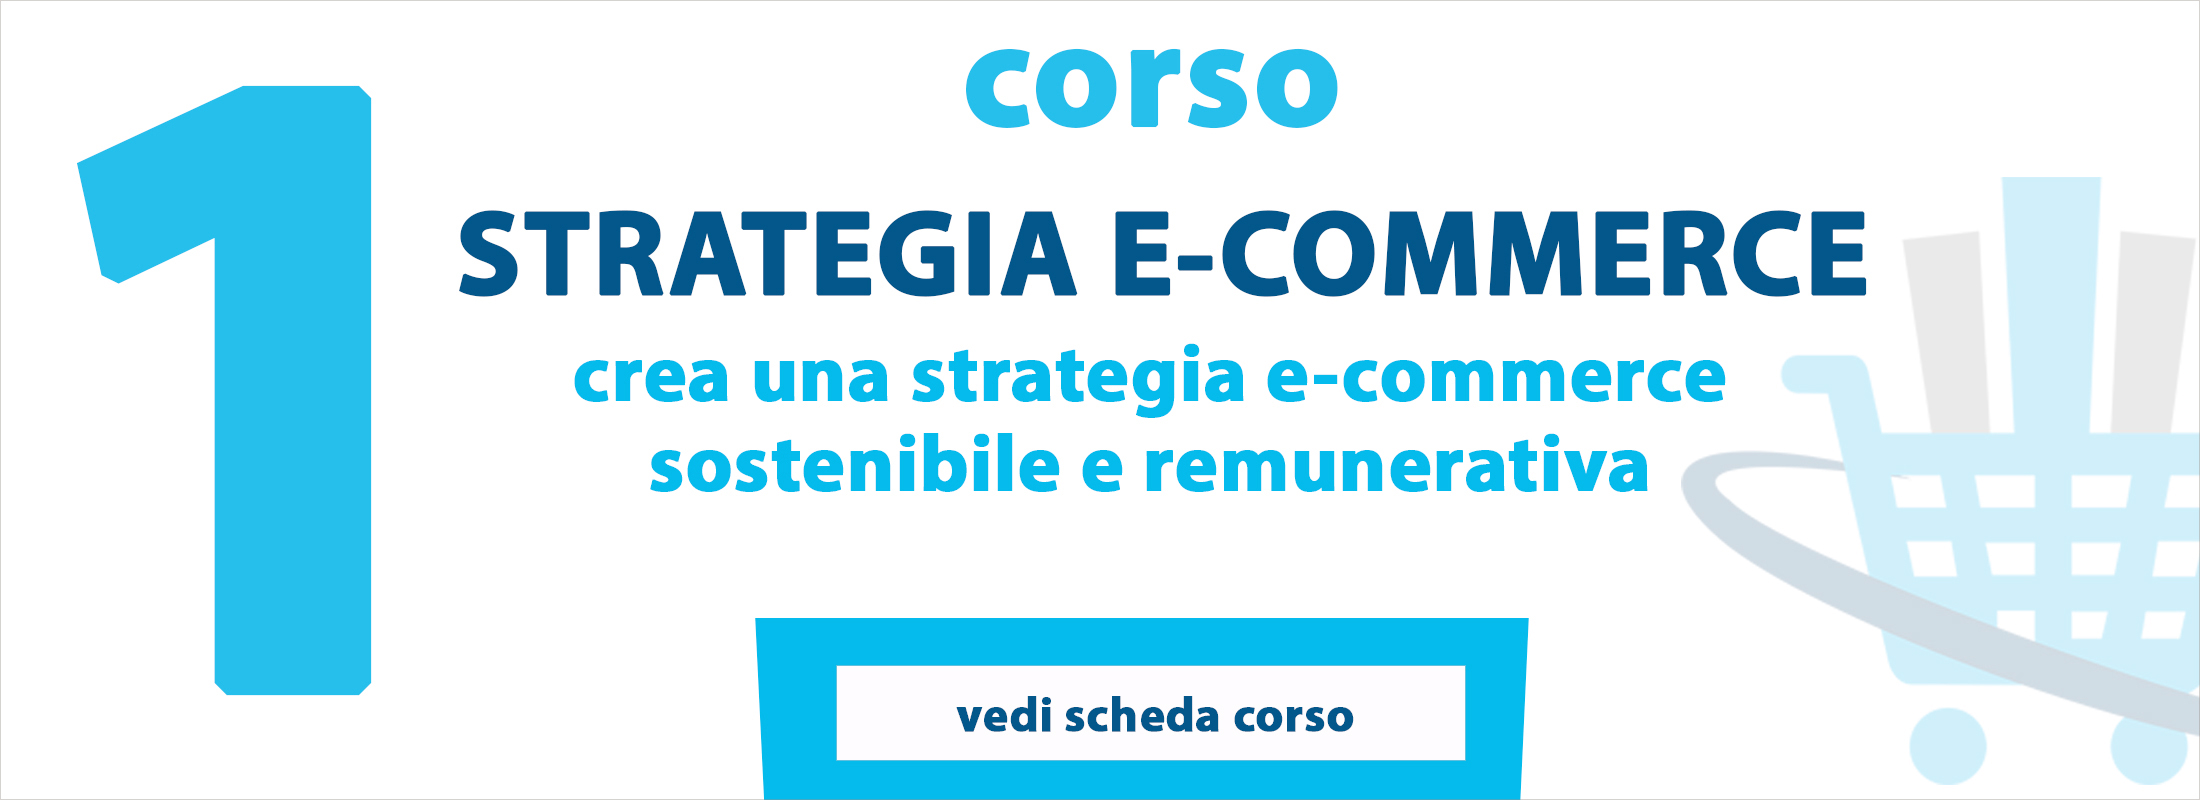 corso1strategiaecommerce